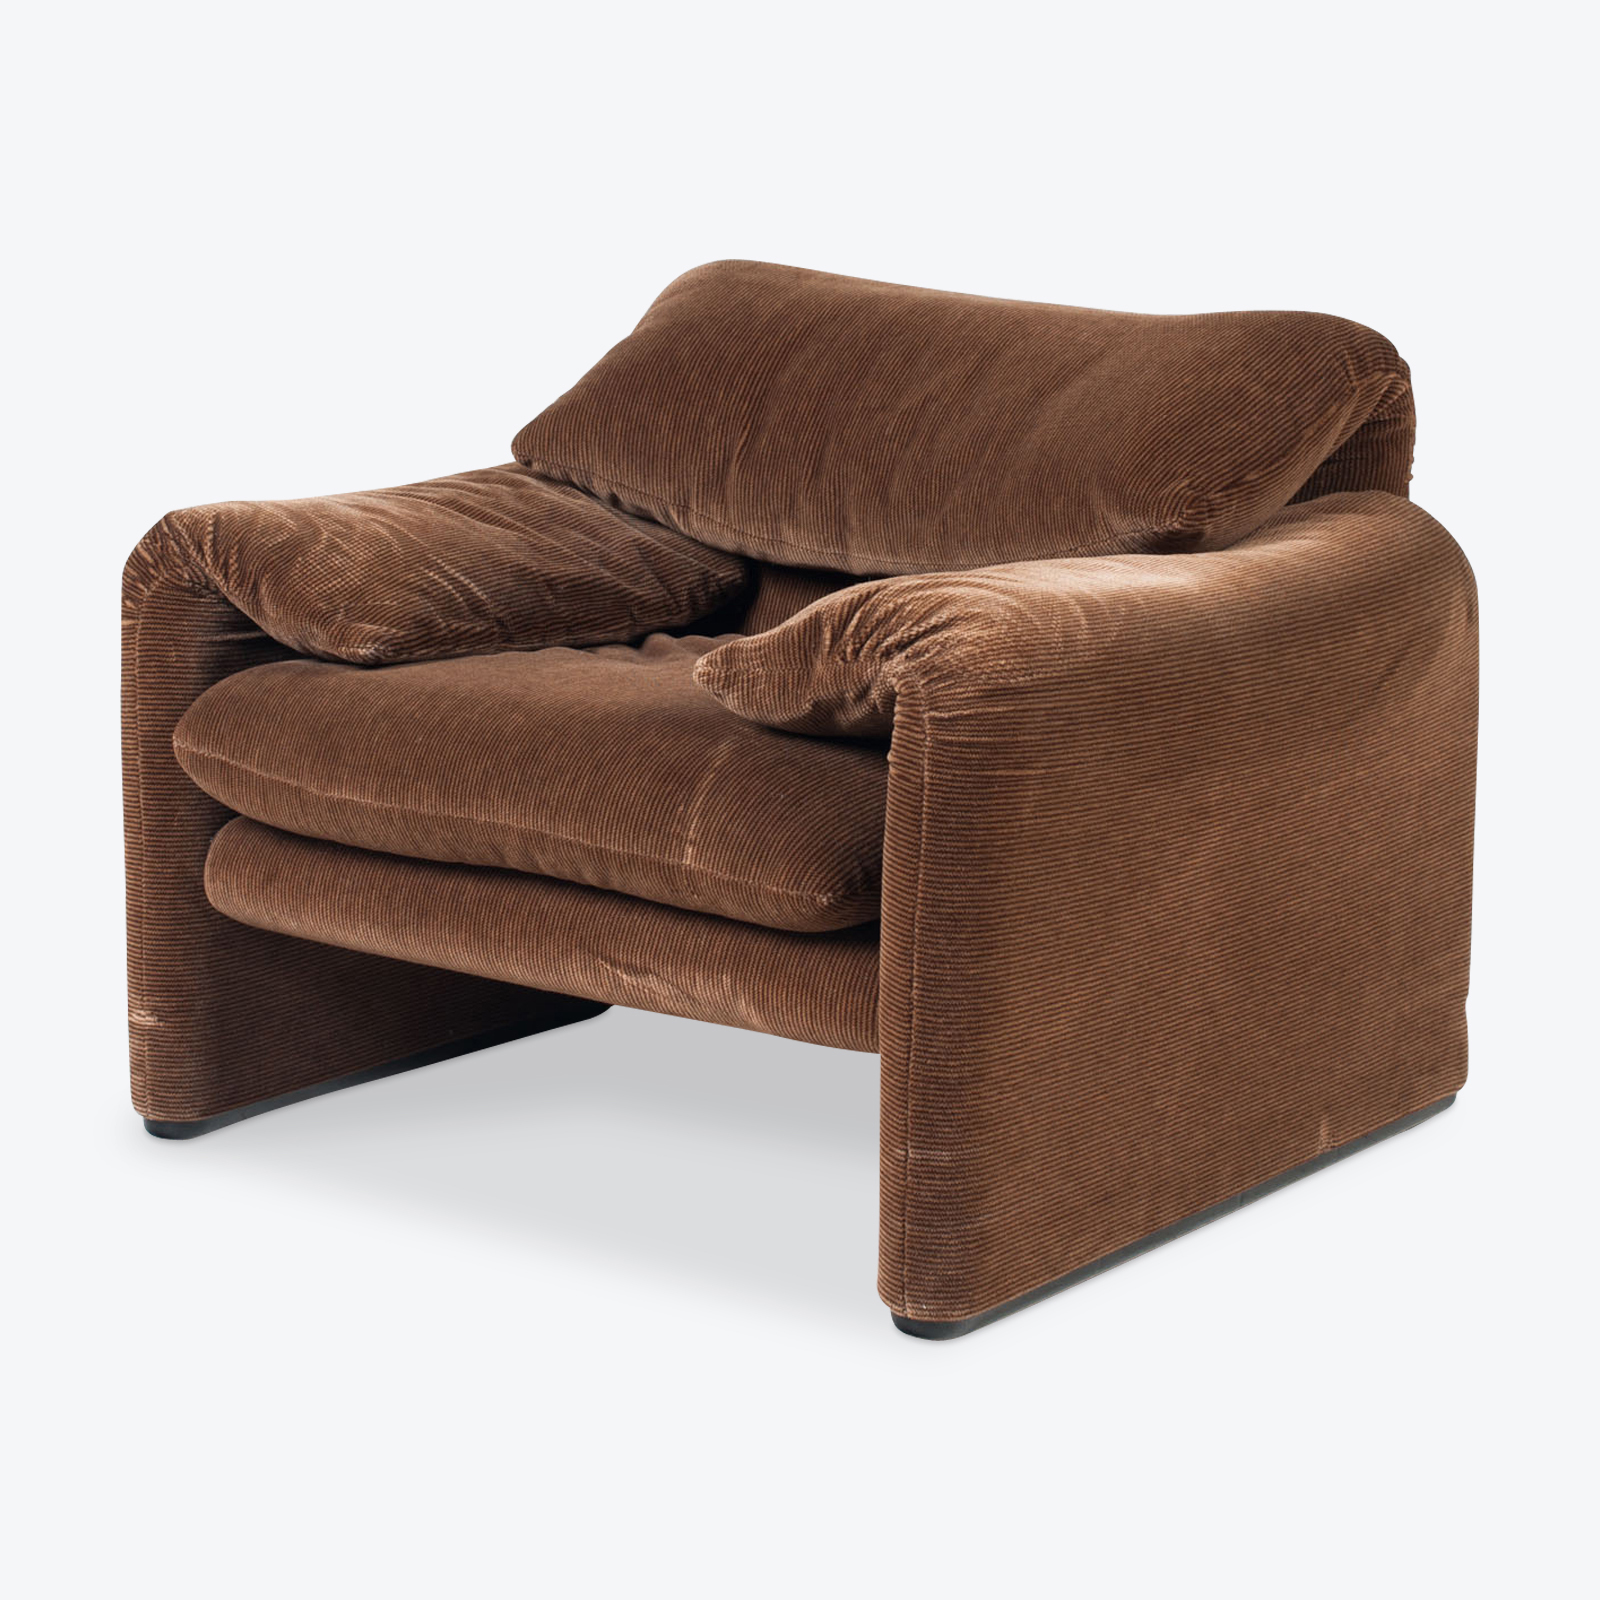 Maralunga Armchair By Vico Magistretti For Cassina In Original Chocolate Velvet 1970s Italy 00